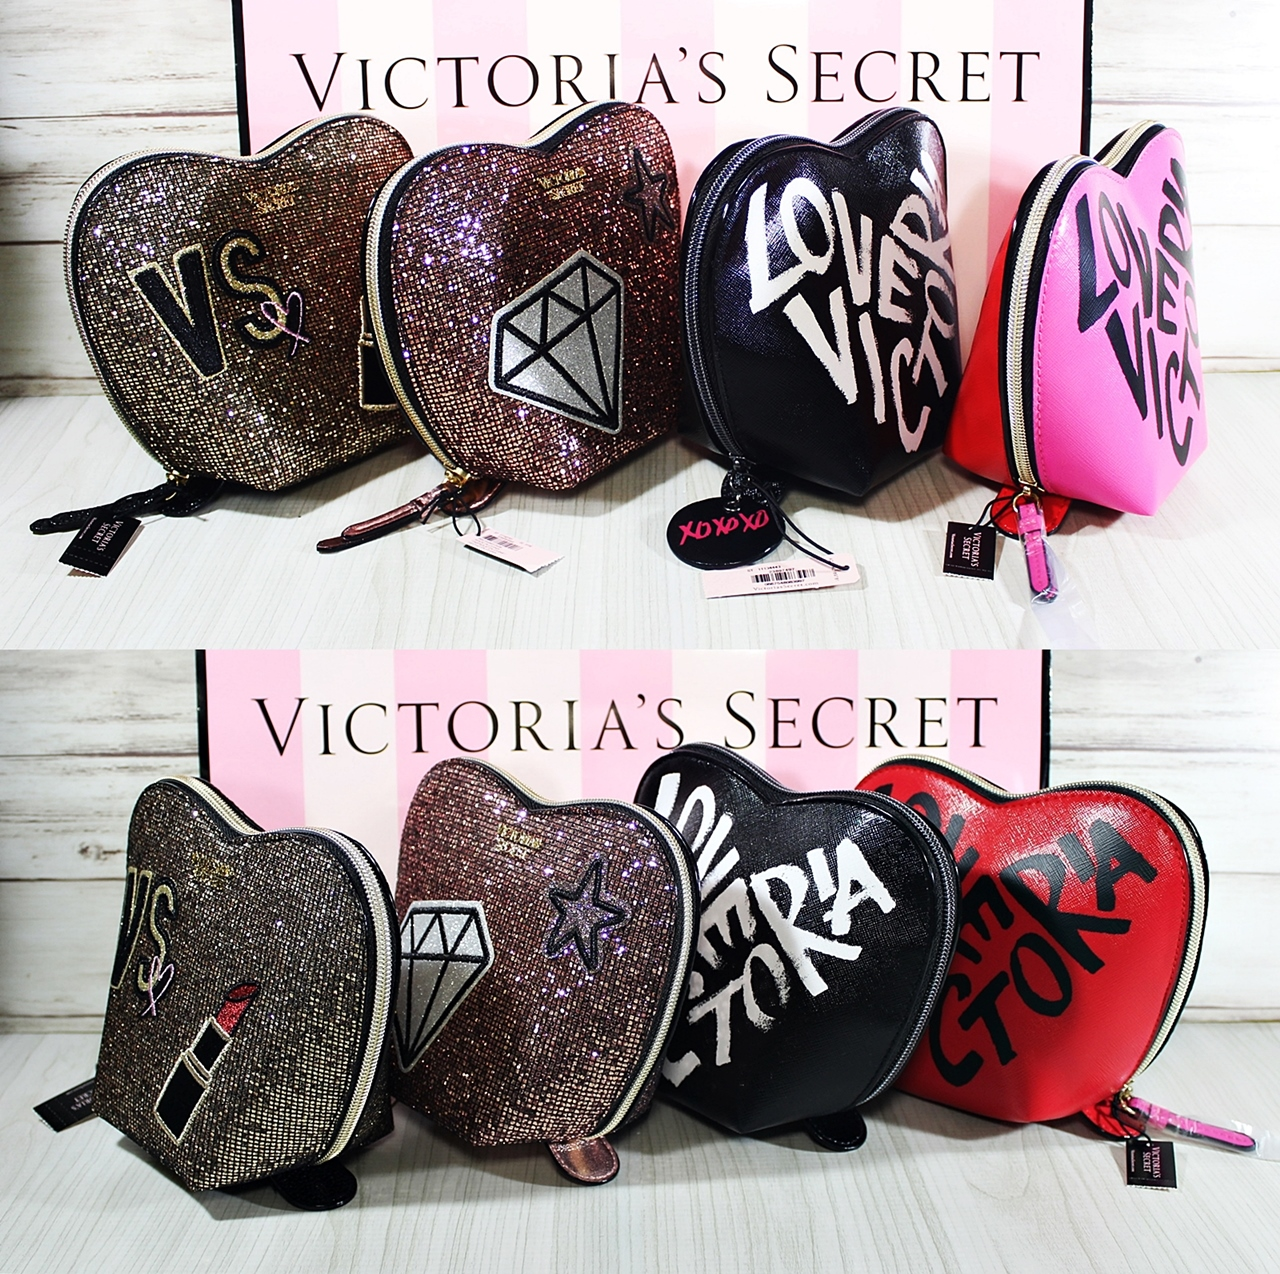 Victoria's Secret Heart Cosmetic Travel Makeup Case